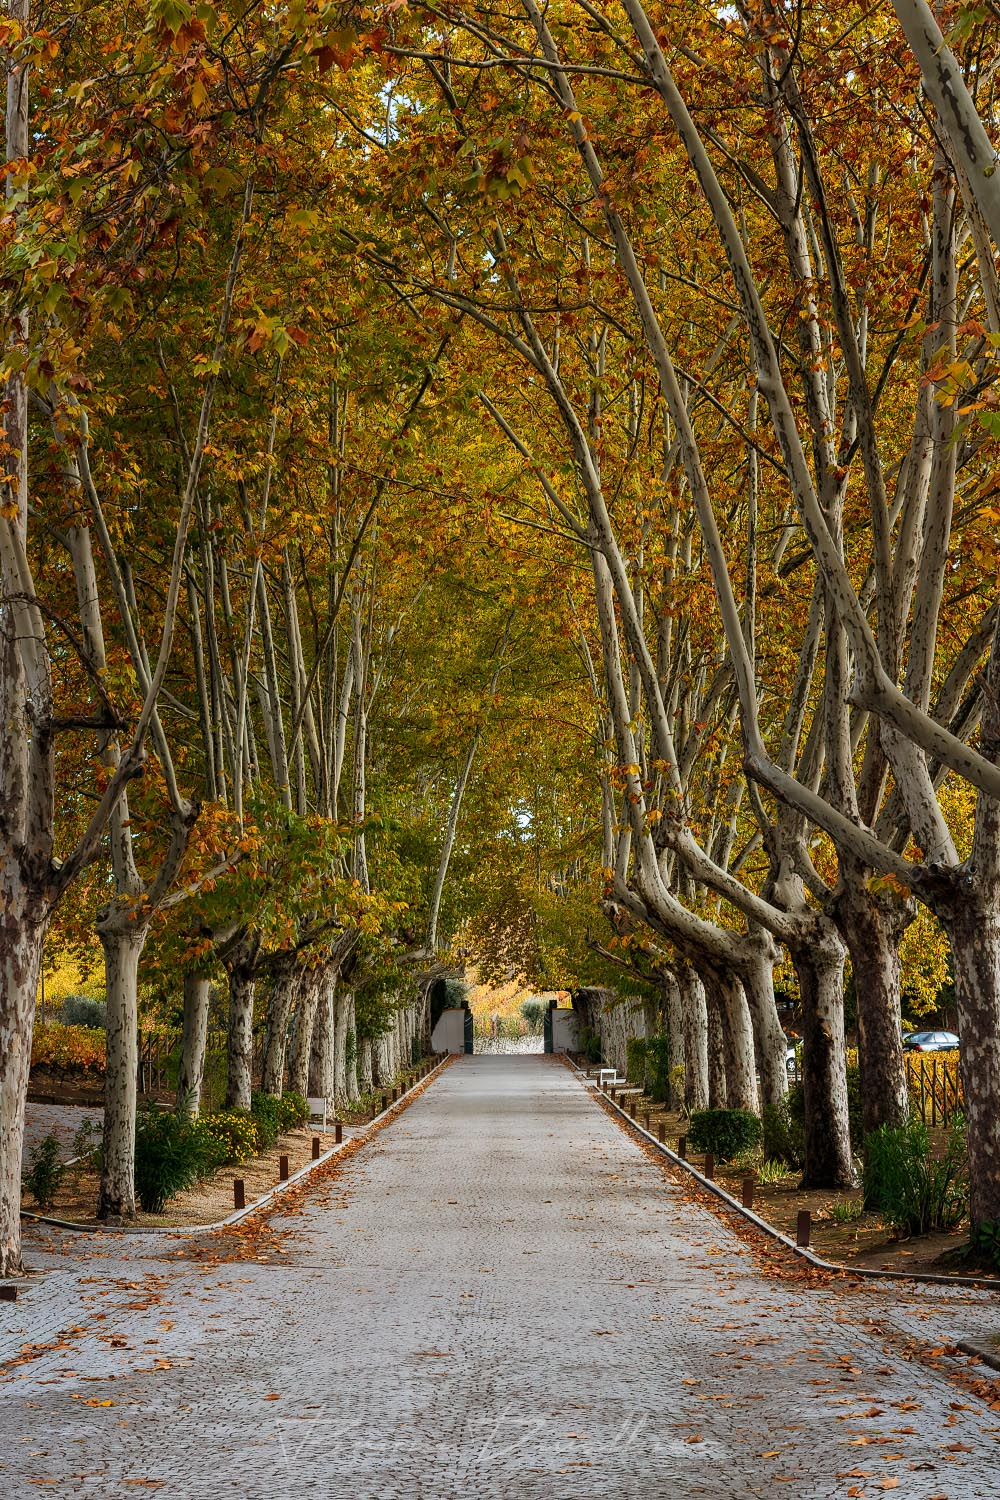 Trees with autumn leaves lining path at Quinta Da Pacheca in Vila Real, Portugal.